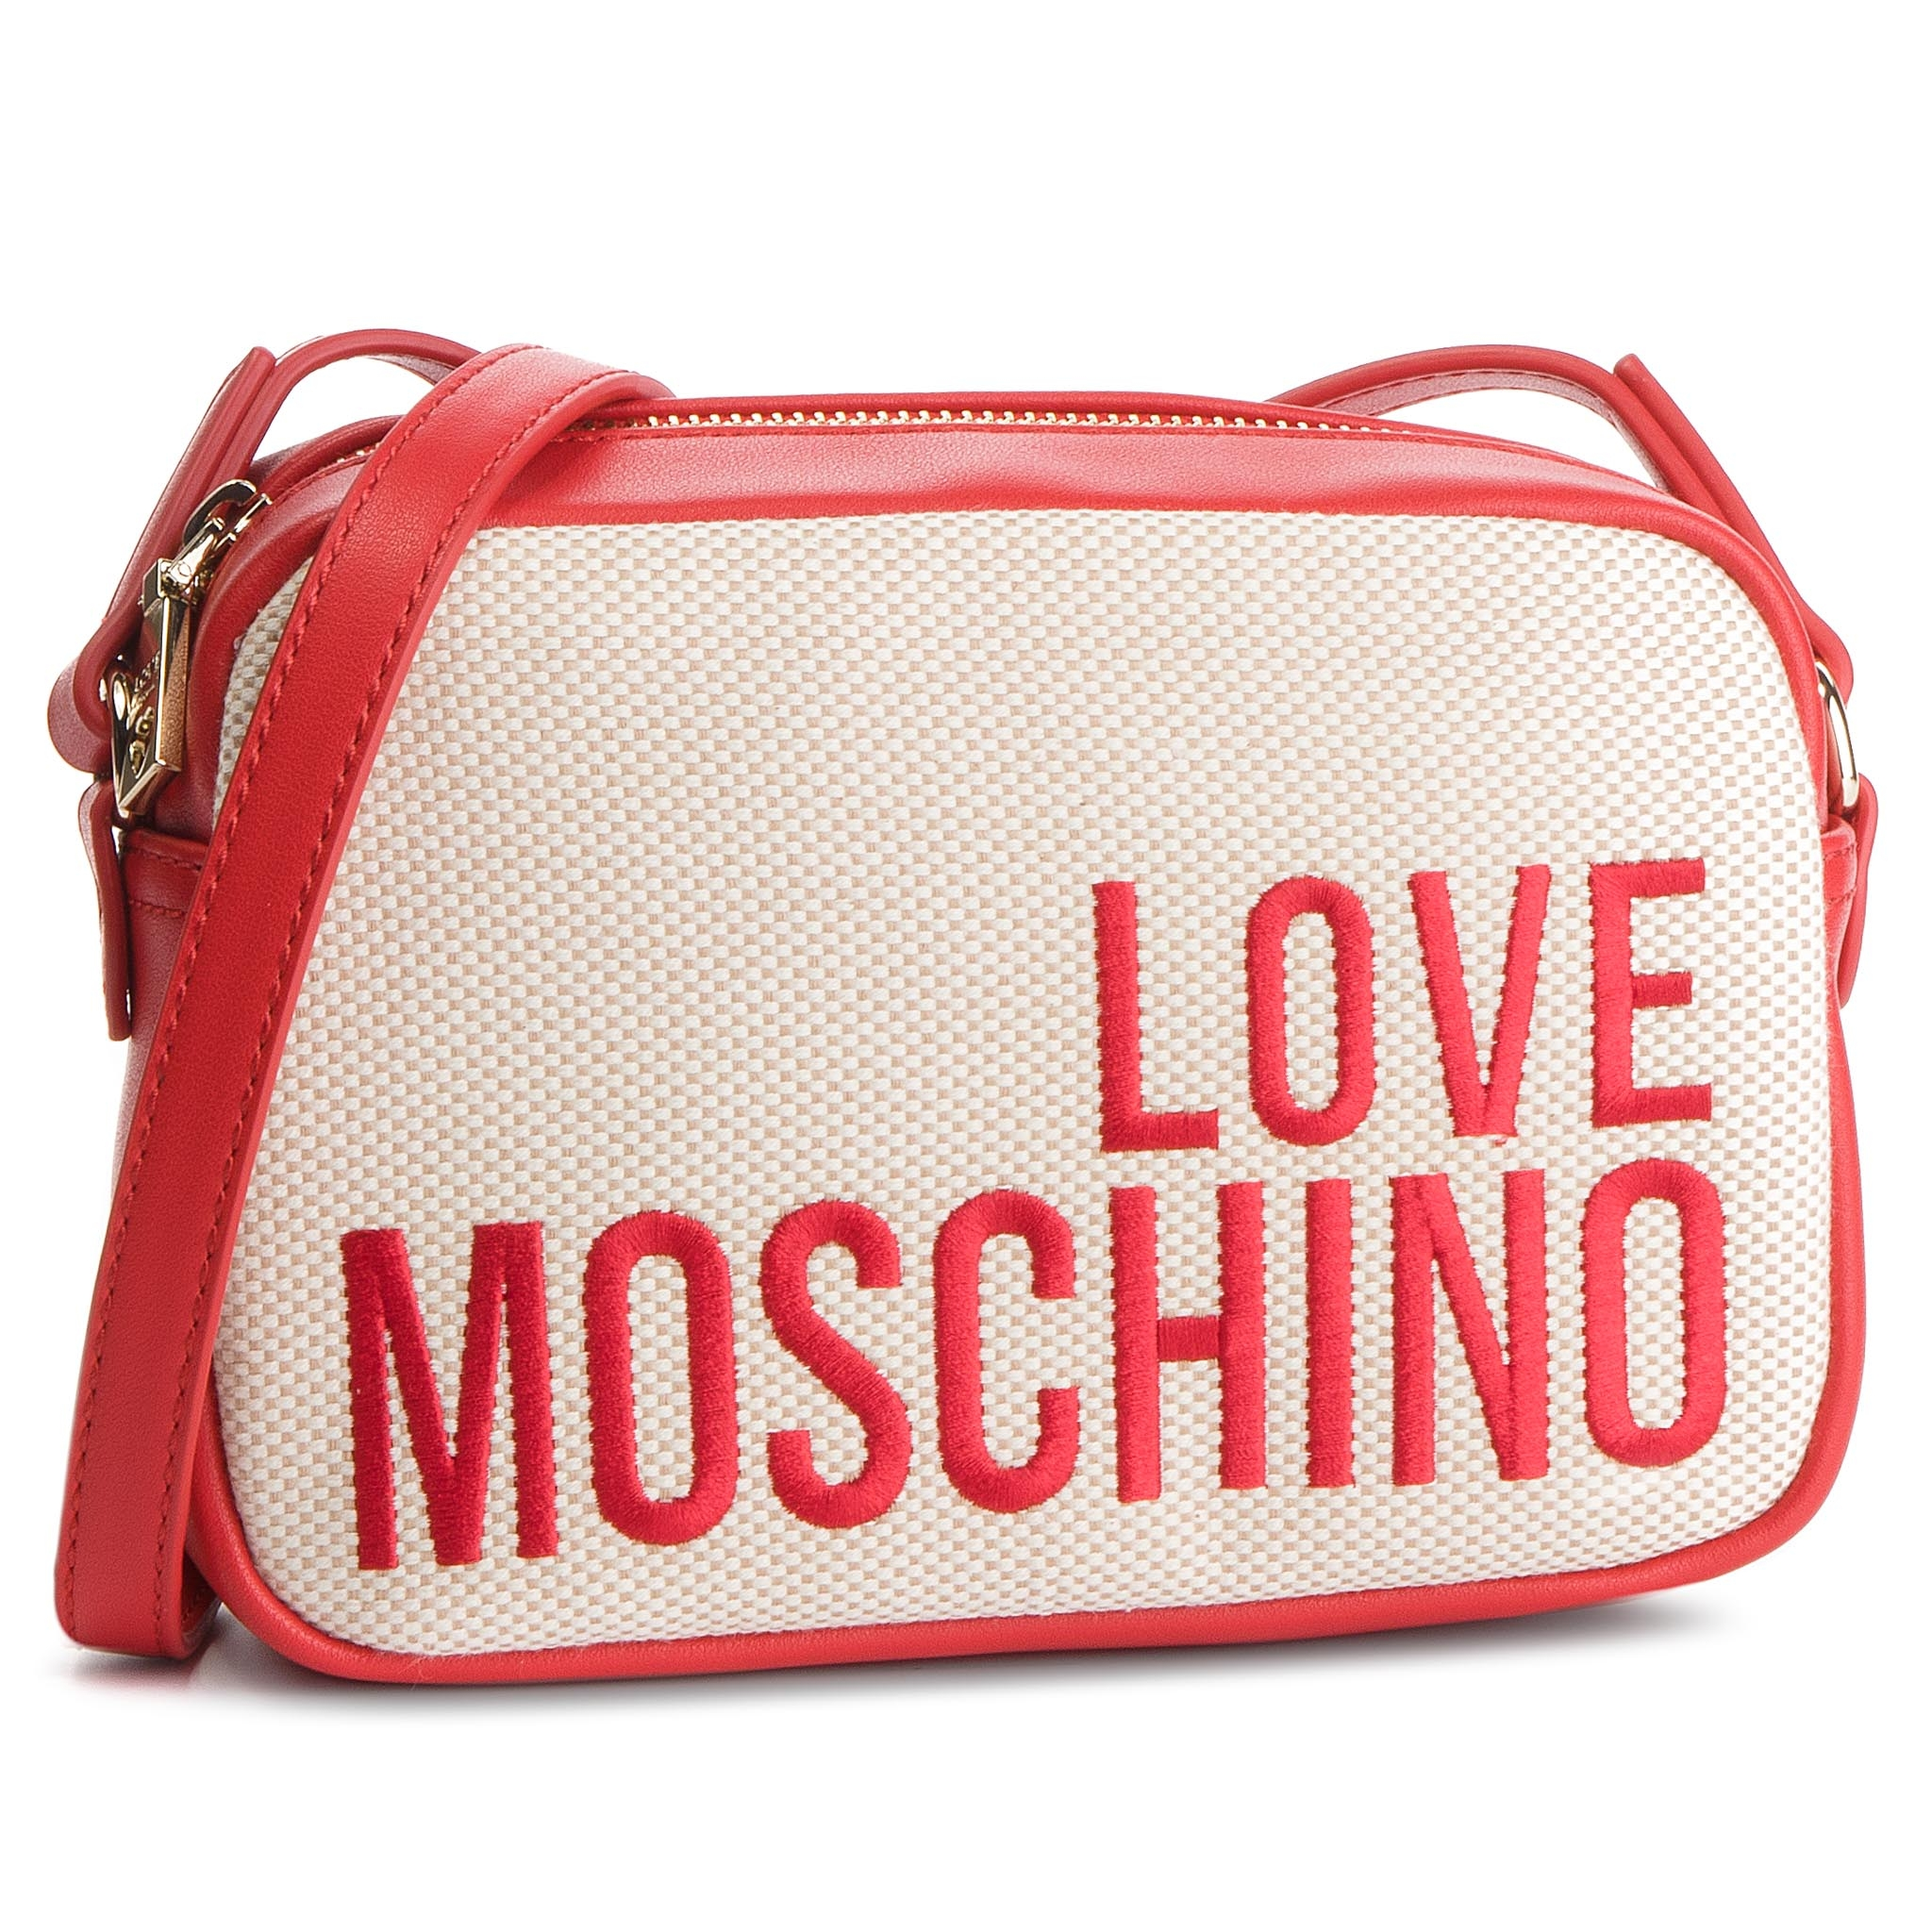 Geantă LOVE MOSCHINO - JC4153PP17LO0107 Naturale